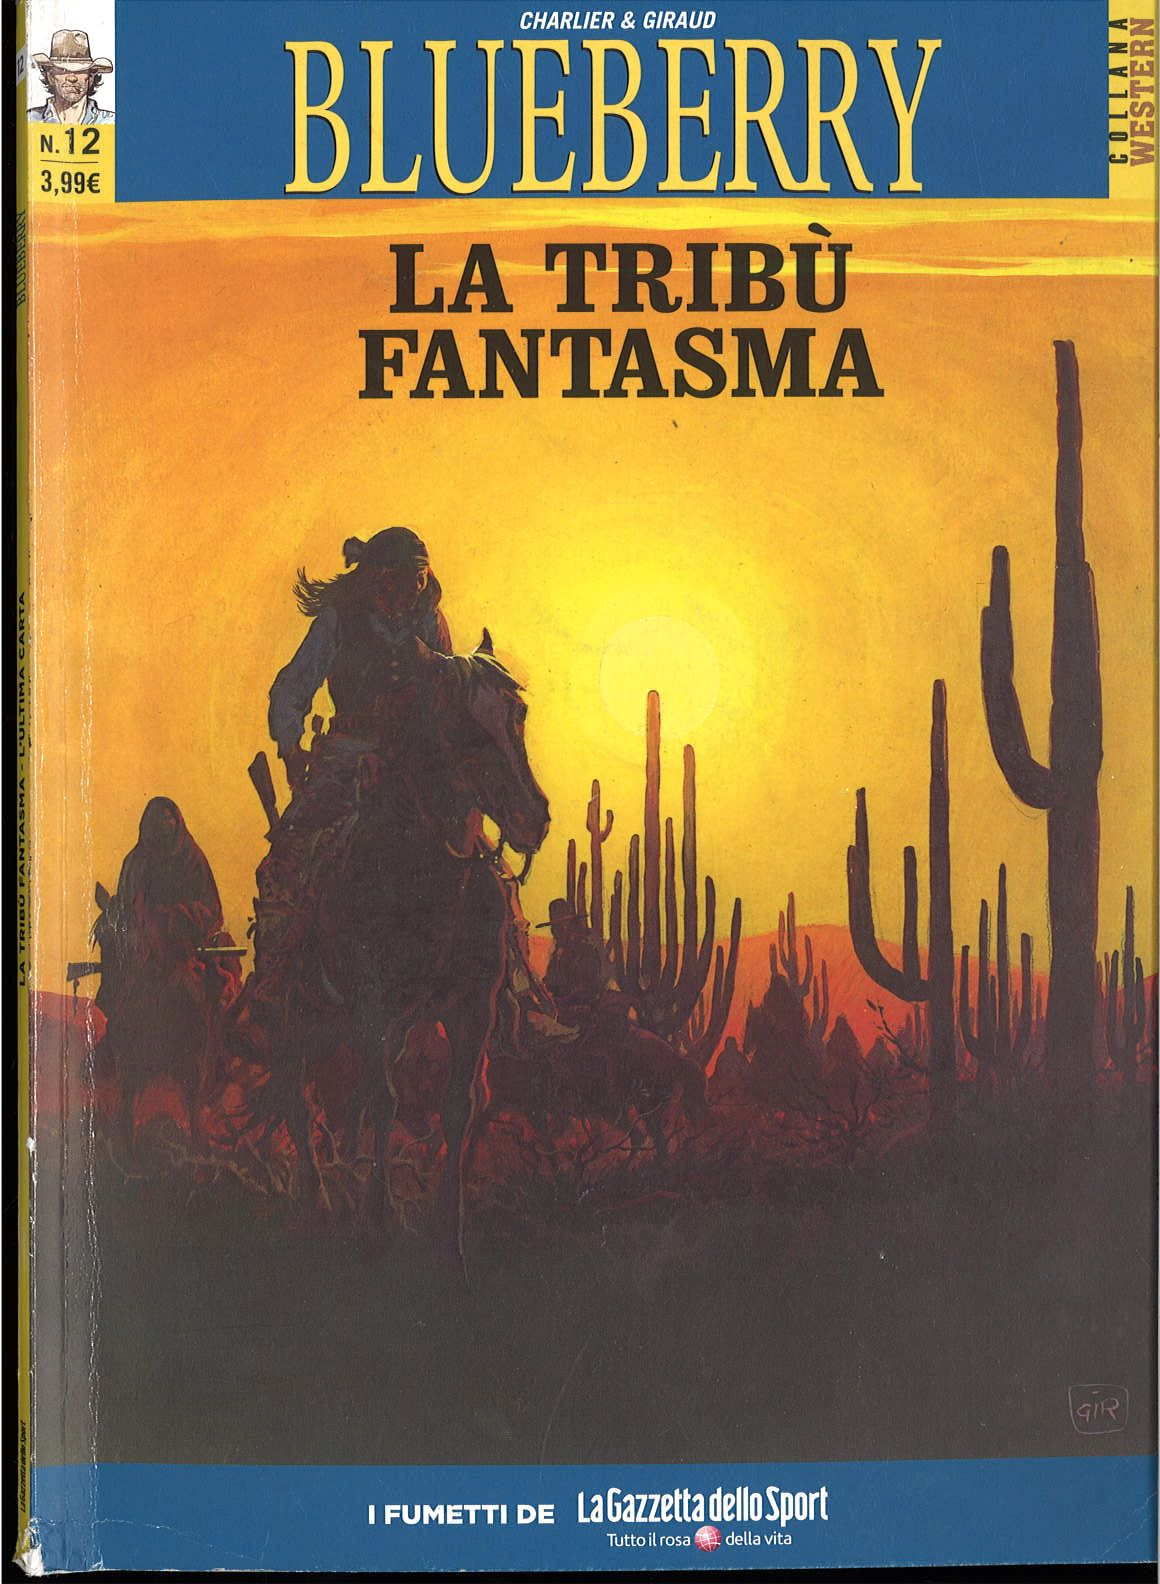 BLUEBARRY N. 12 - LA TRIBU' FANTASMA,